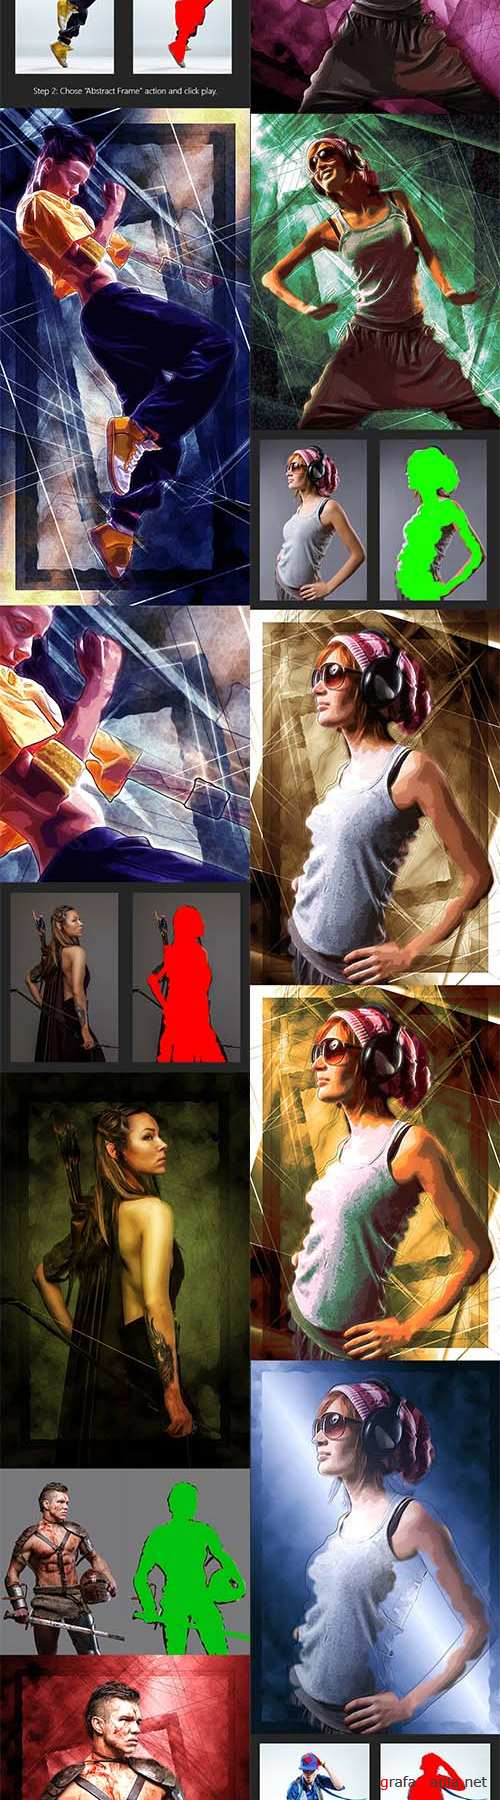 GraphicRiver - Abstract Frame Photoshop Action 10957345